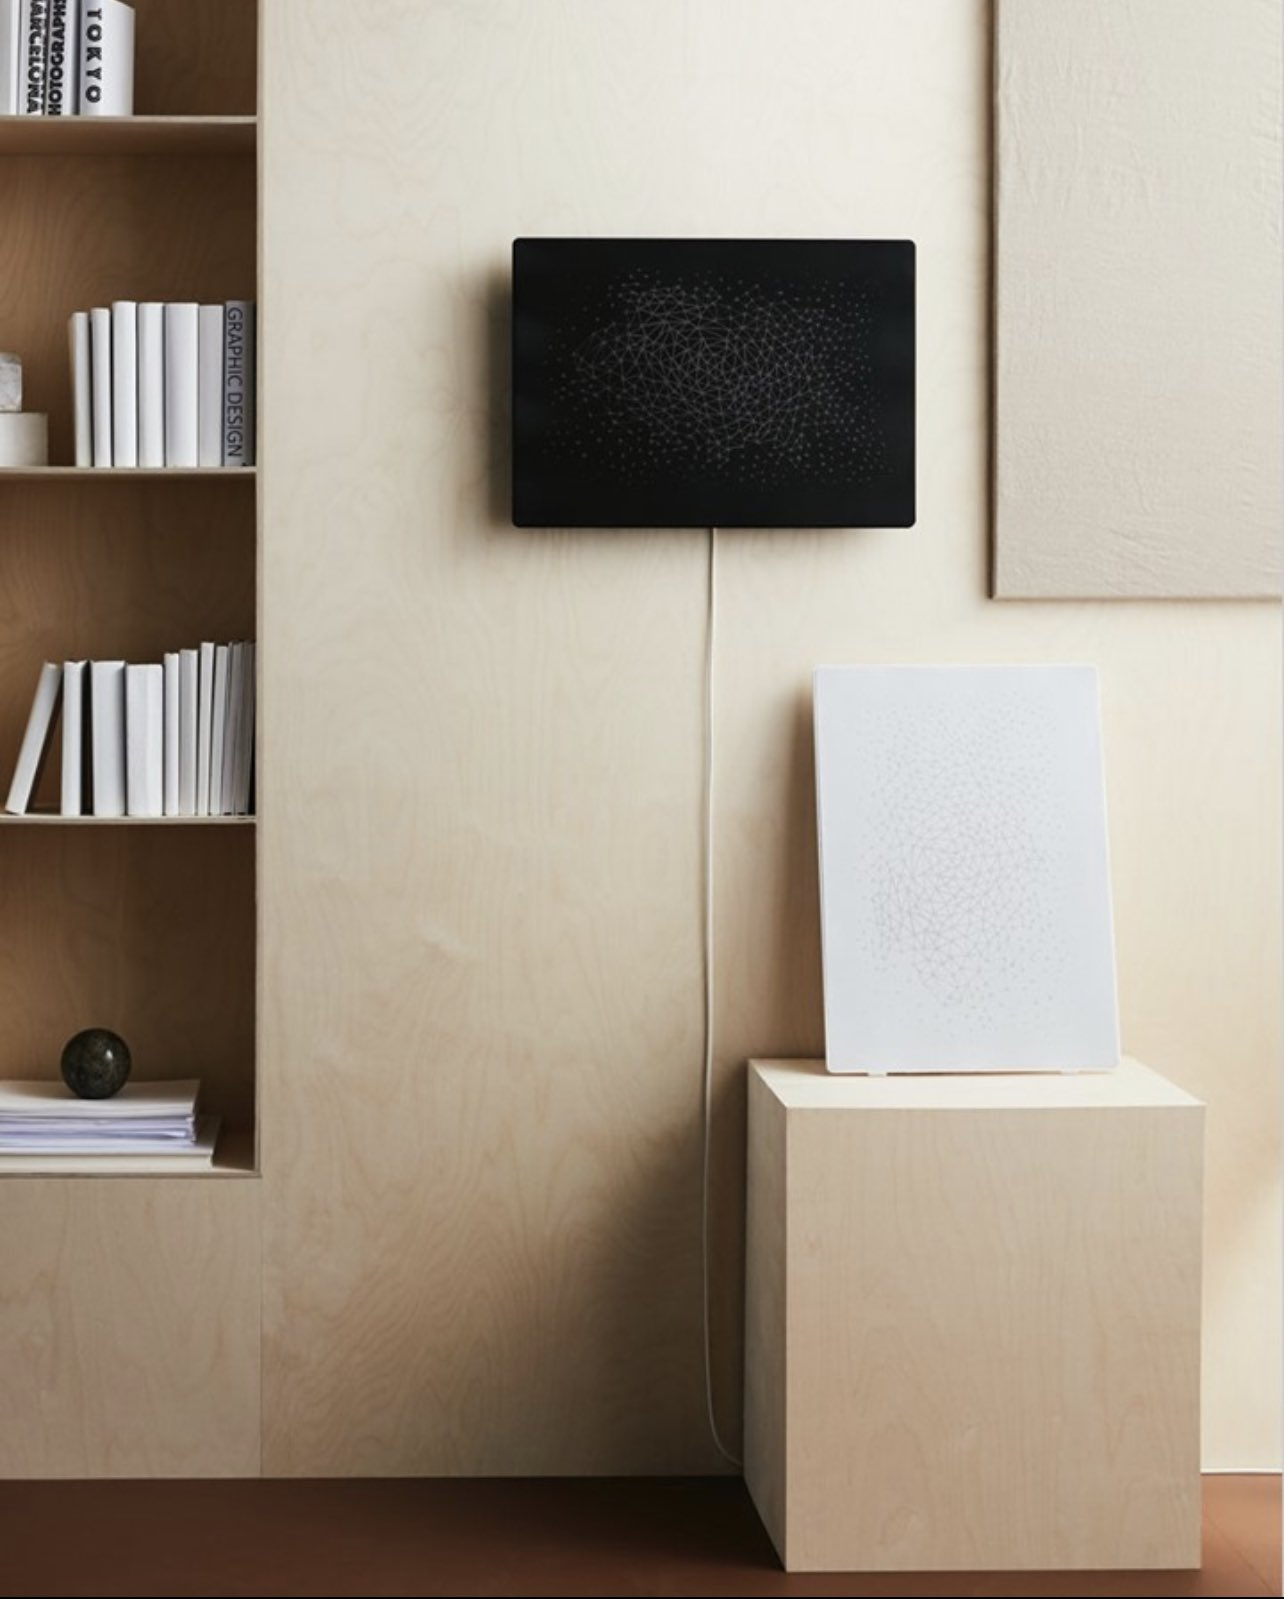 Symfonisk Picture Frame Speaker By IKEA – Specification And Pricing Details